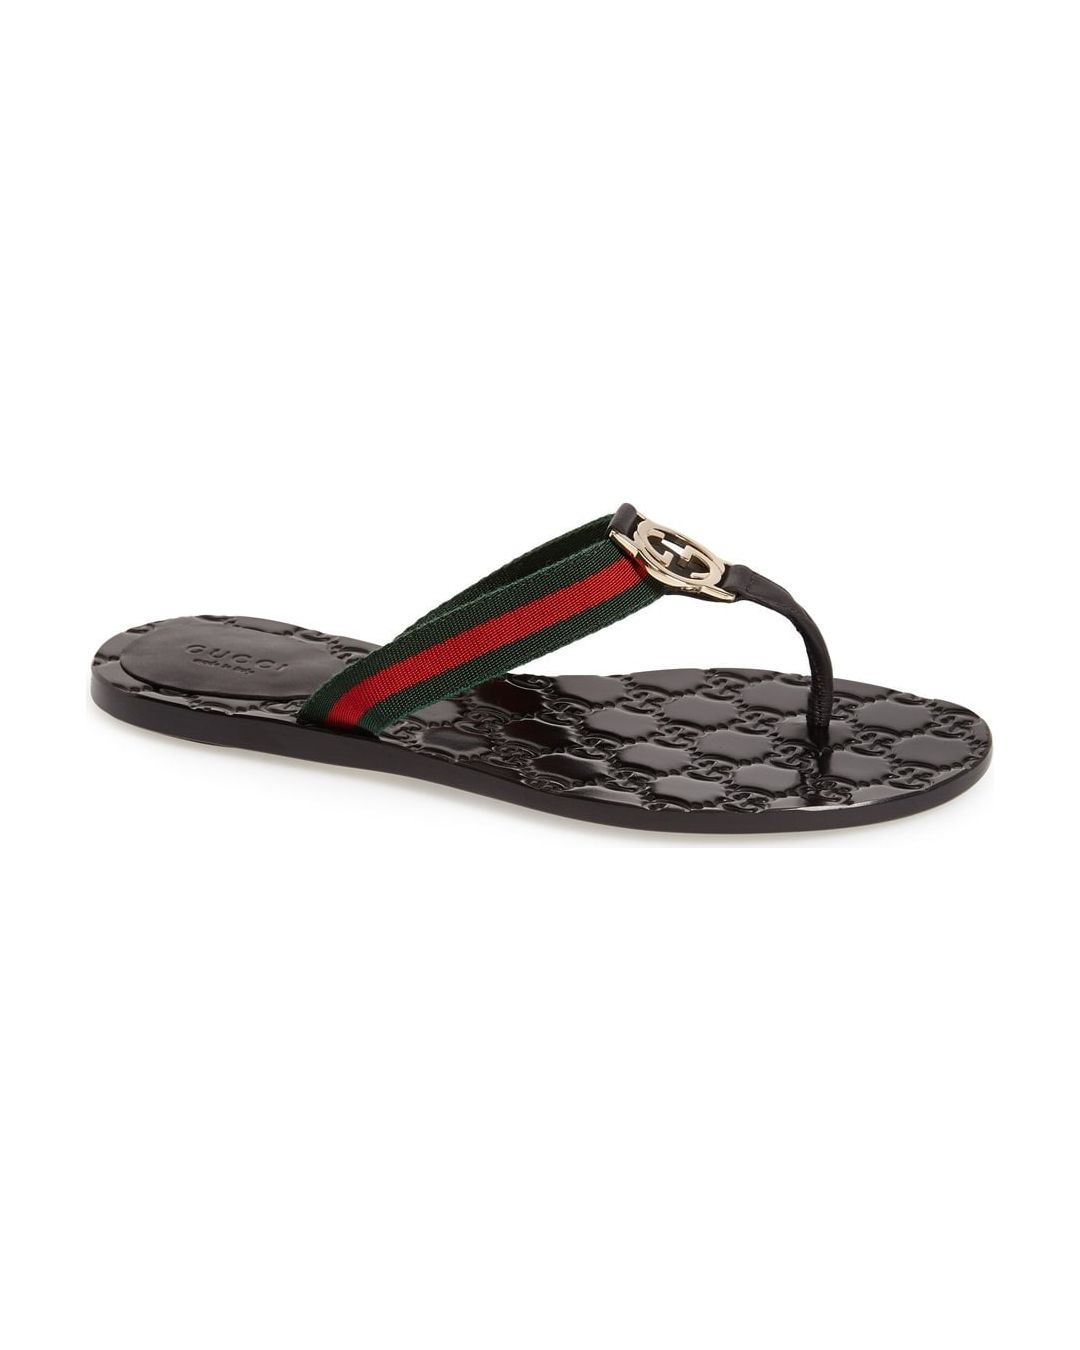 91c32e024 Gucci Thong web sandal Reviews and prices Only Best Shoes